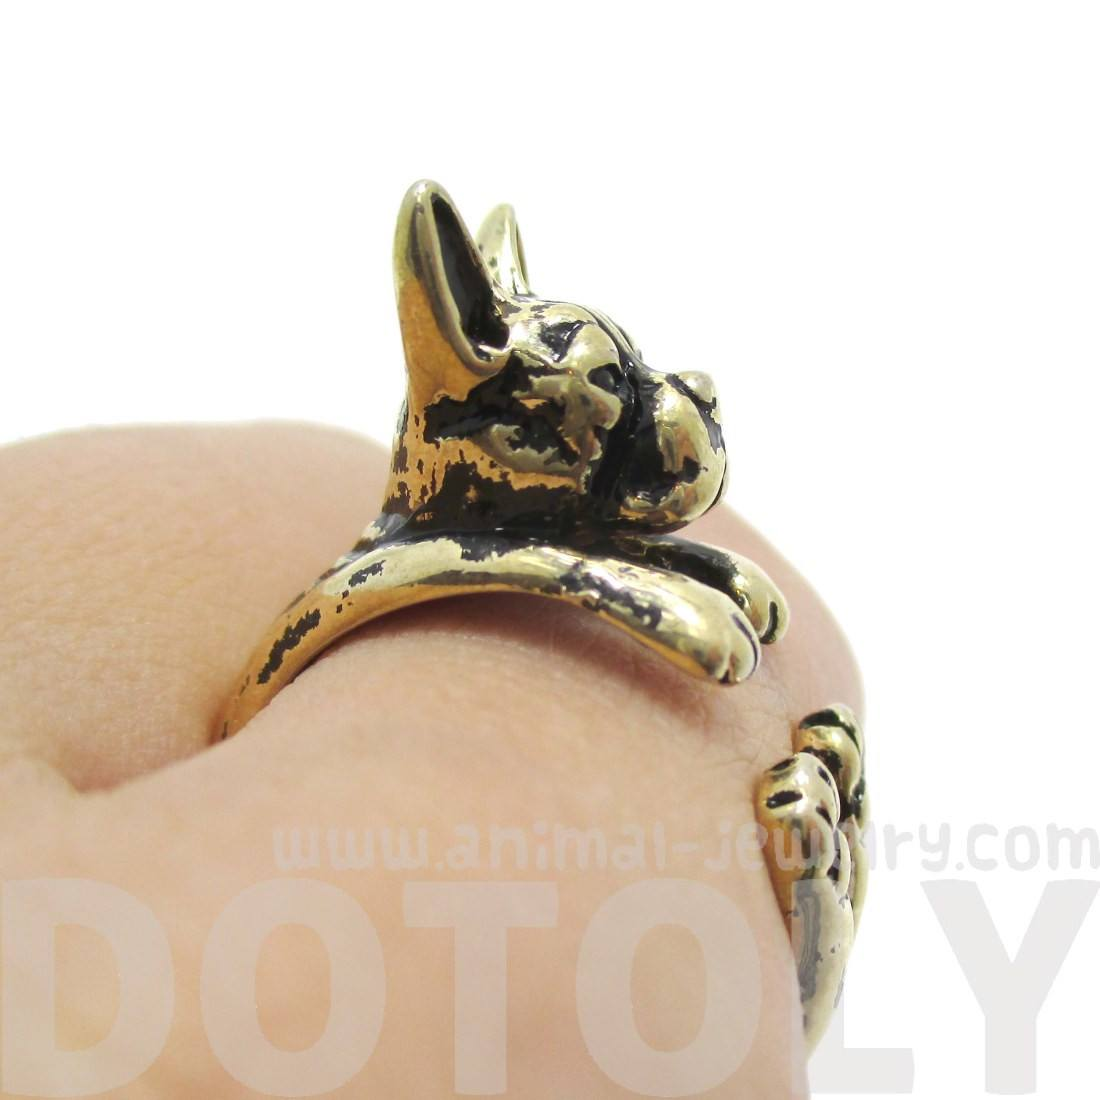 Boston Terrier Puppy Shaped Animal Ring in Shiny Gold